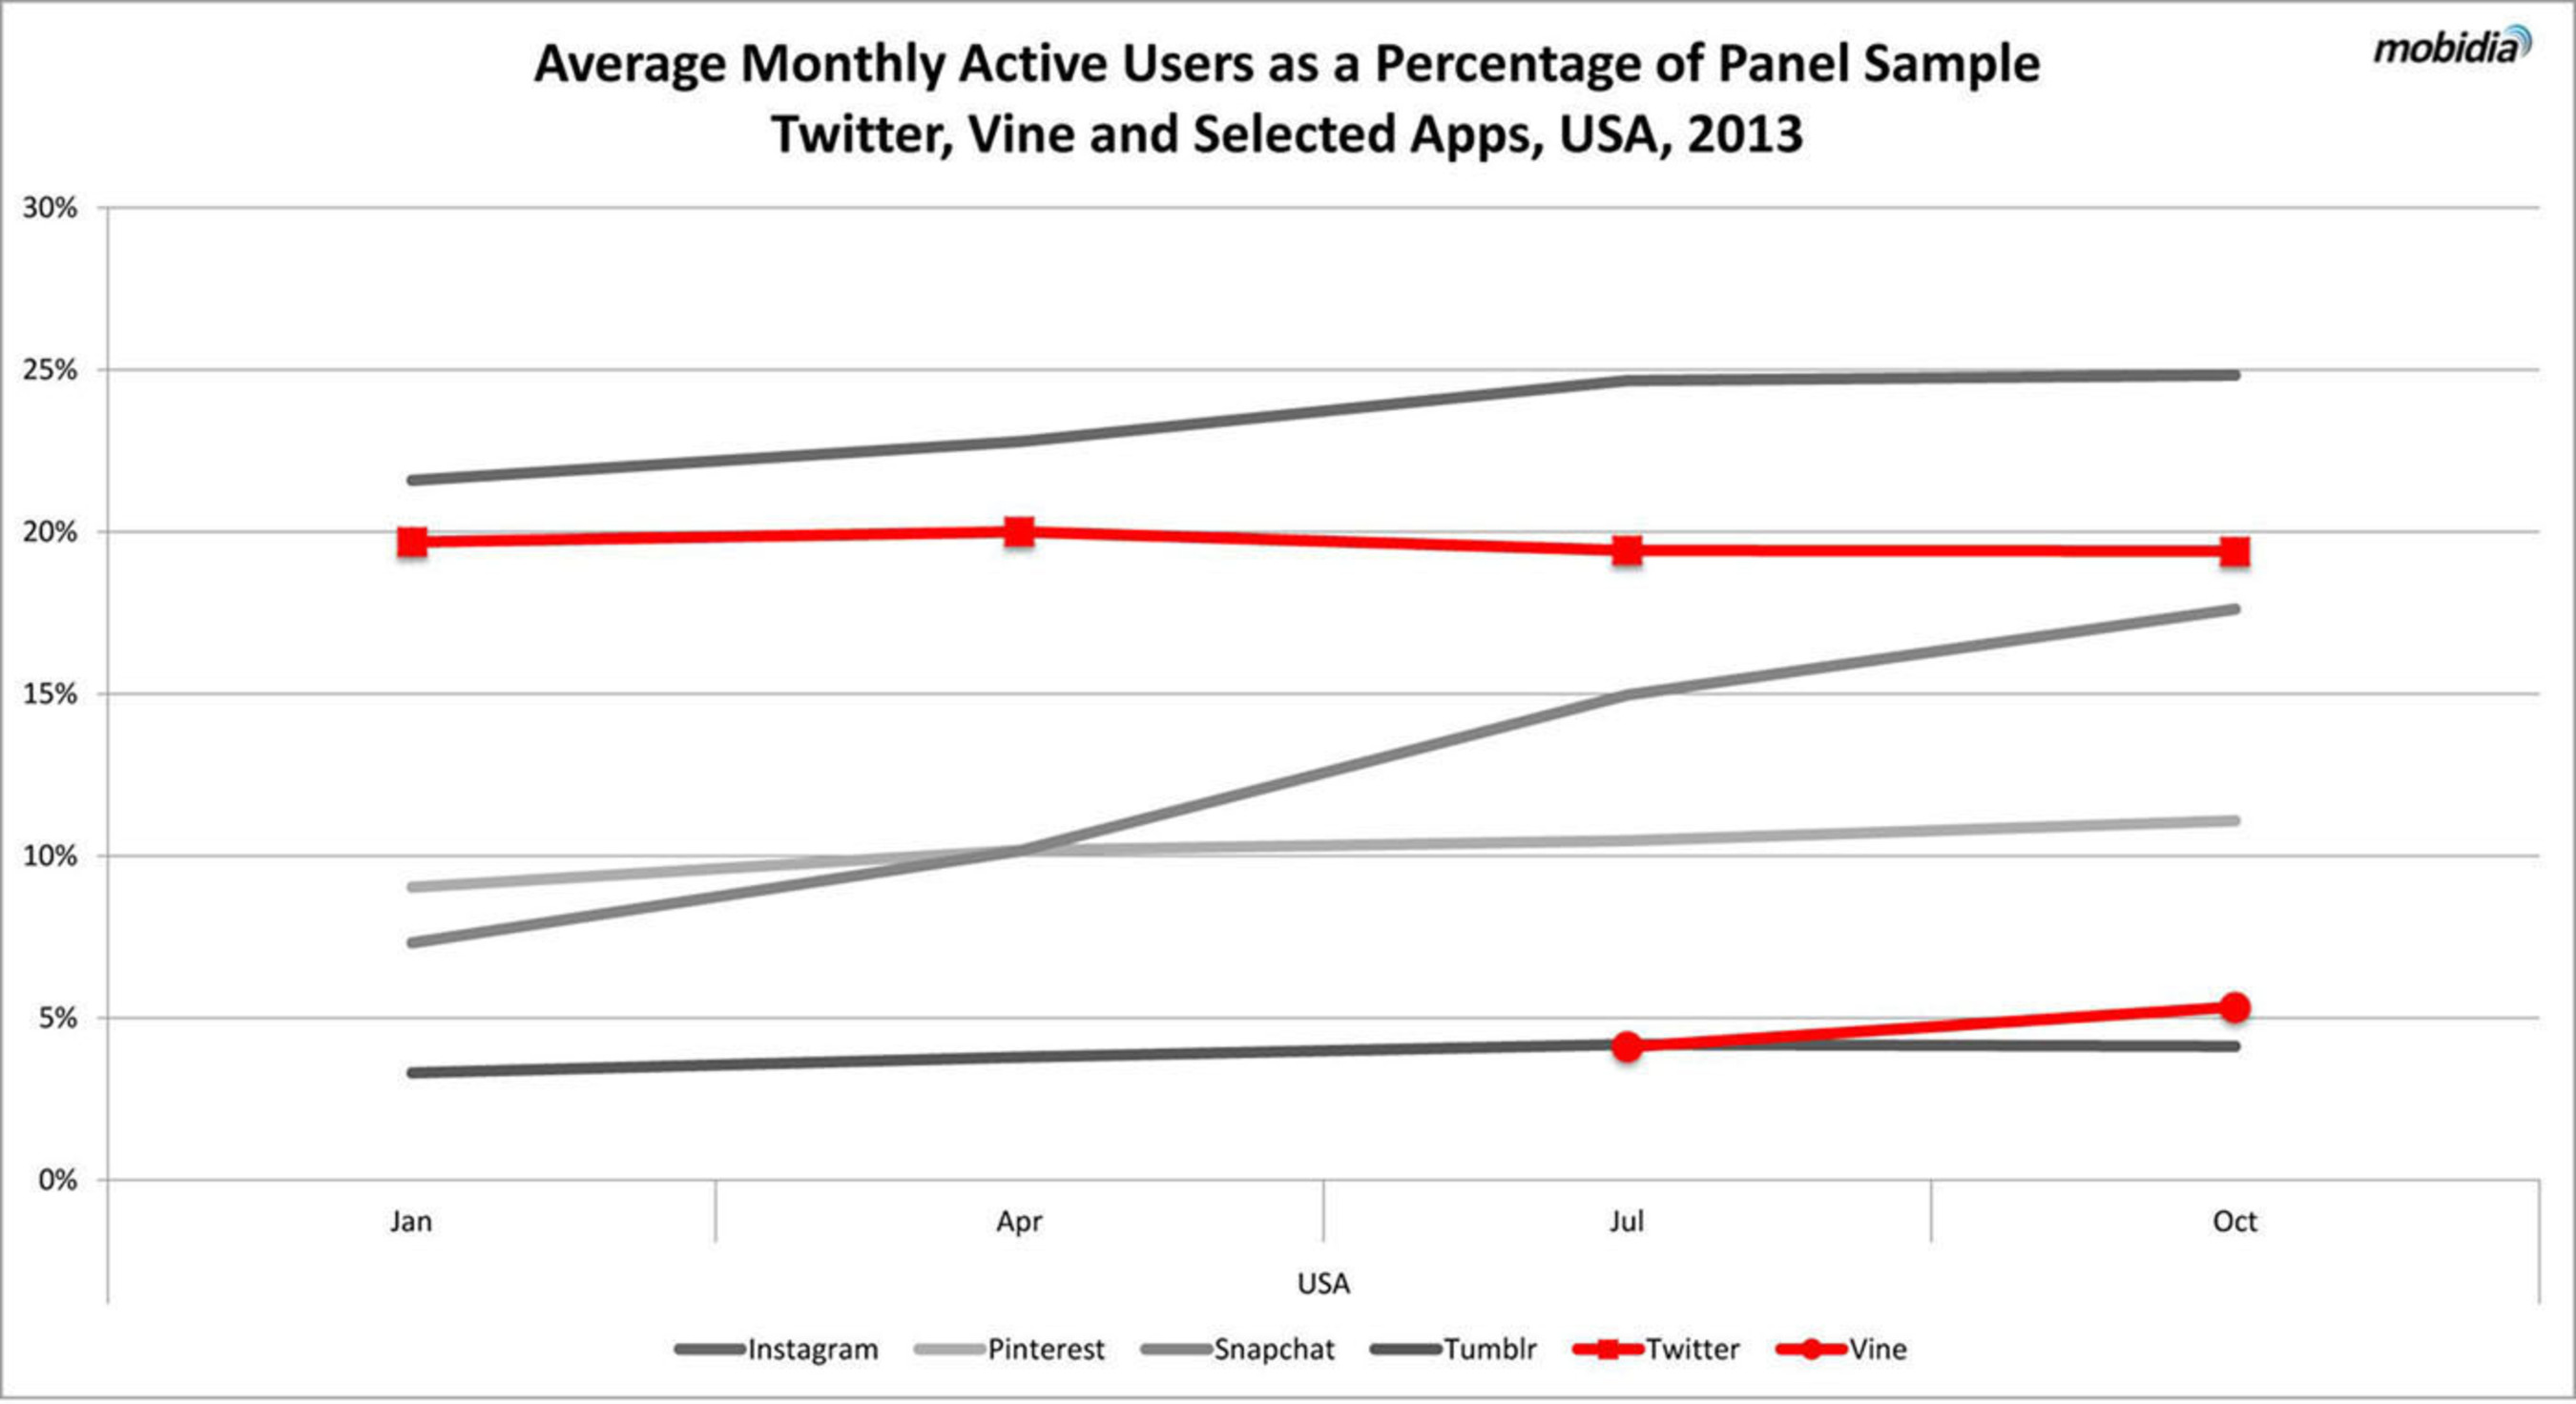 """Average Monthly Active Users as a Percentage of Panel Sample Twitter, Vine and Selected Apps, USA, 2013"".  (PRNewsFoto/Mobidia Technology, Inc.)"